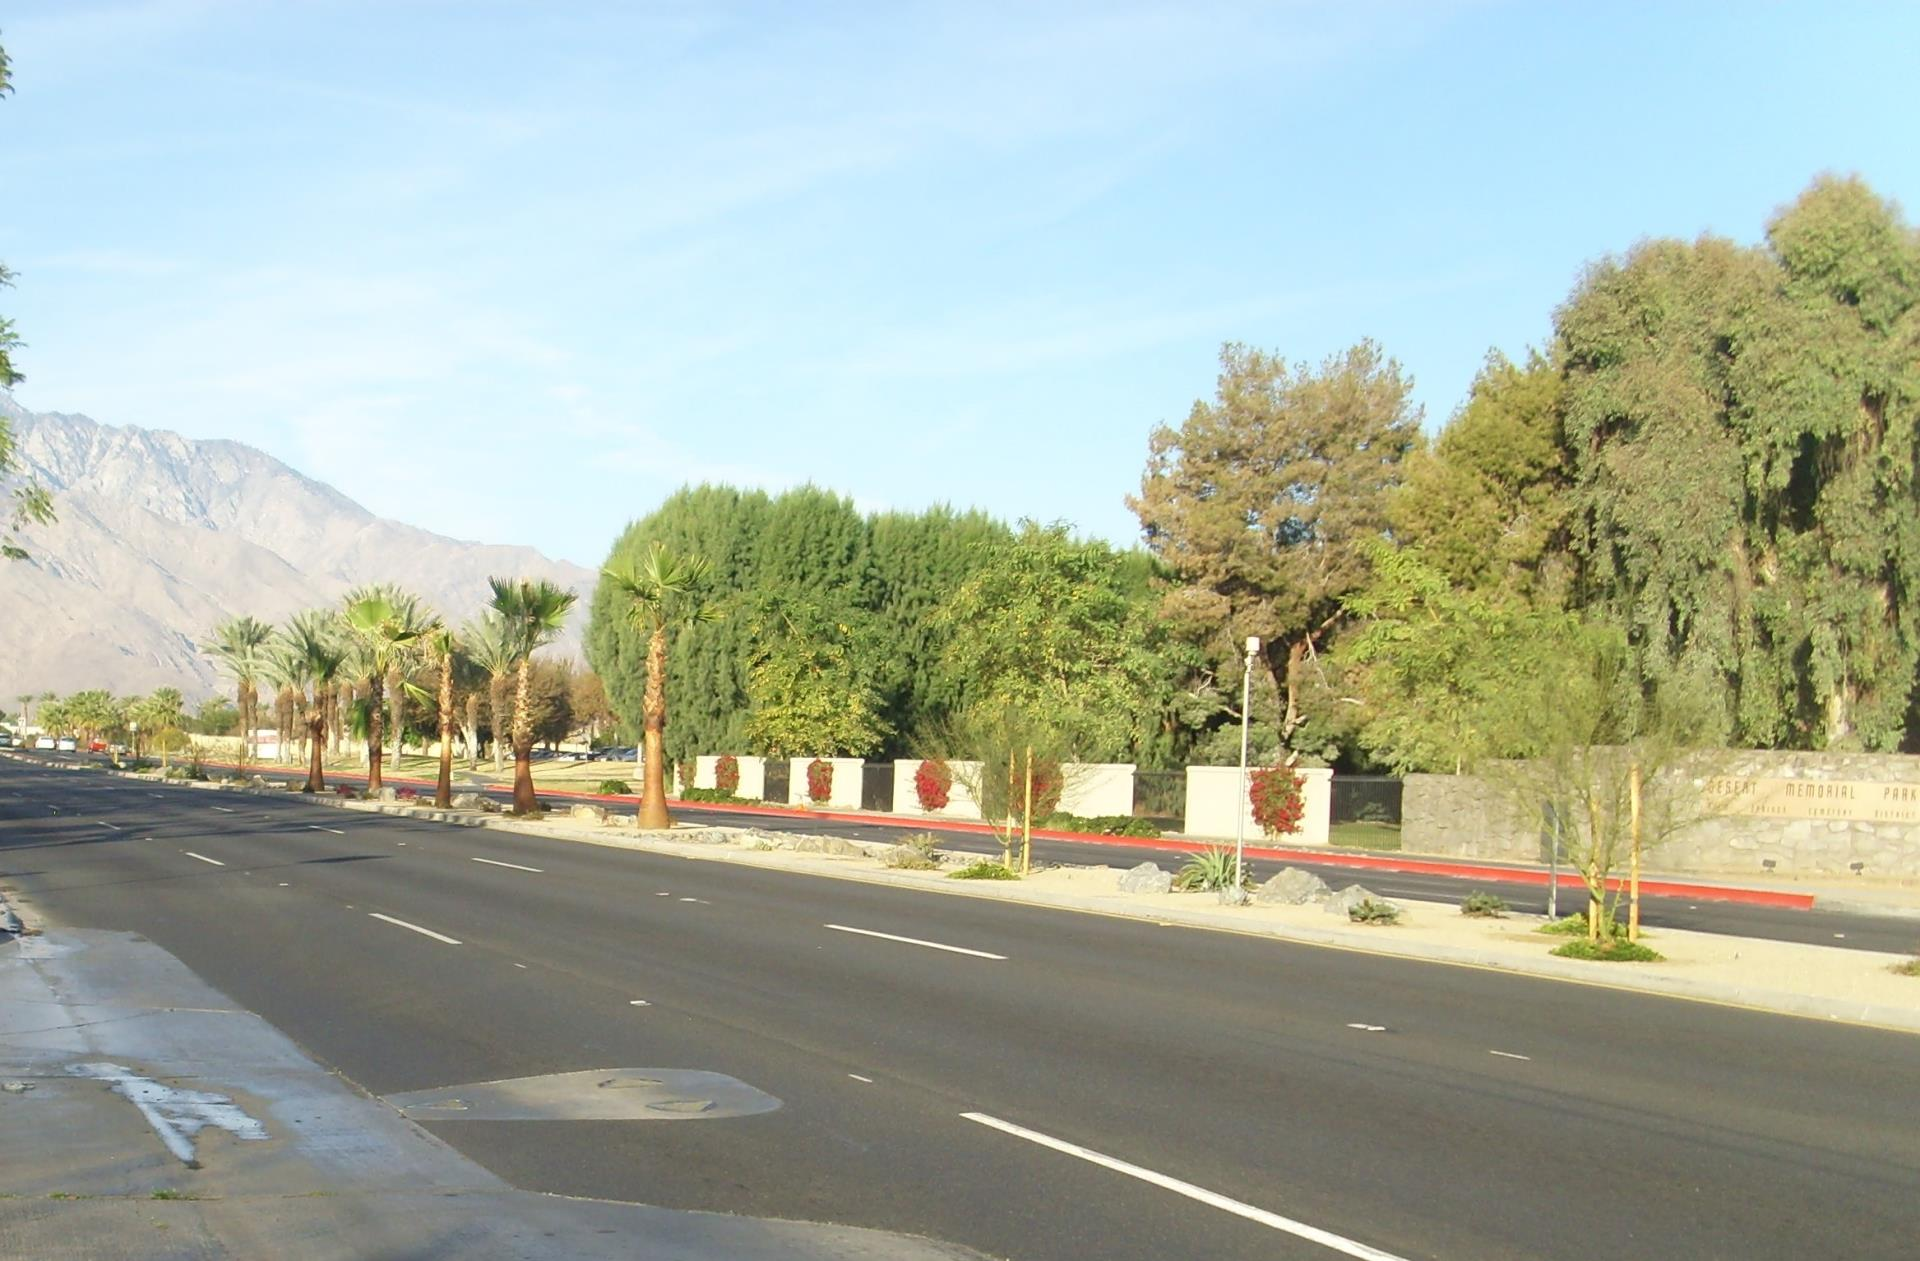 East Palm Canyon Median Hardscape Improvements